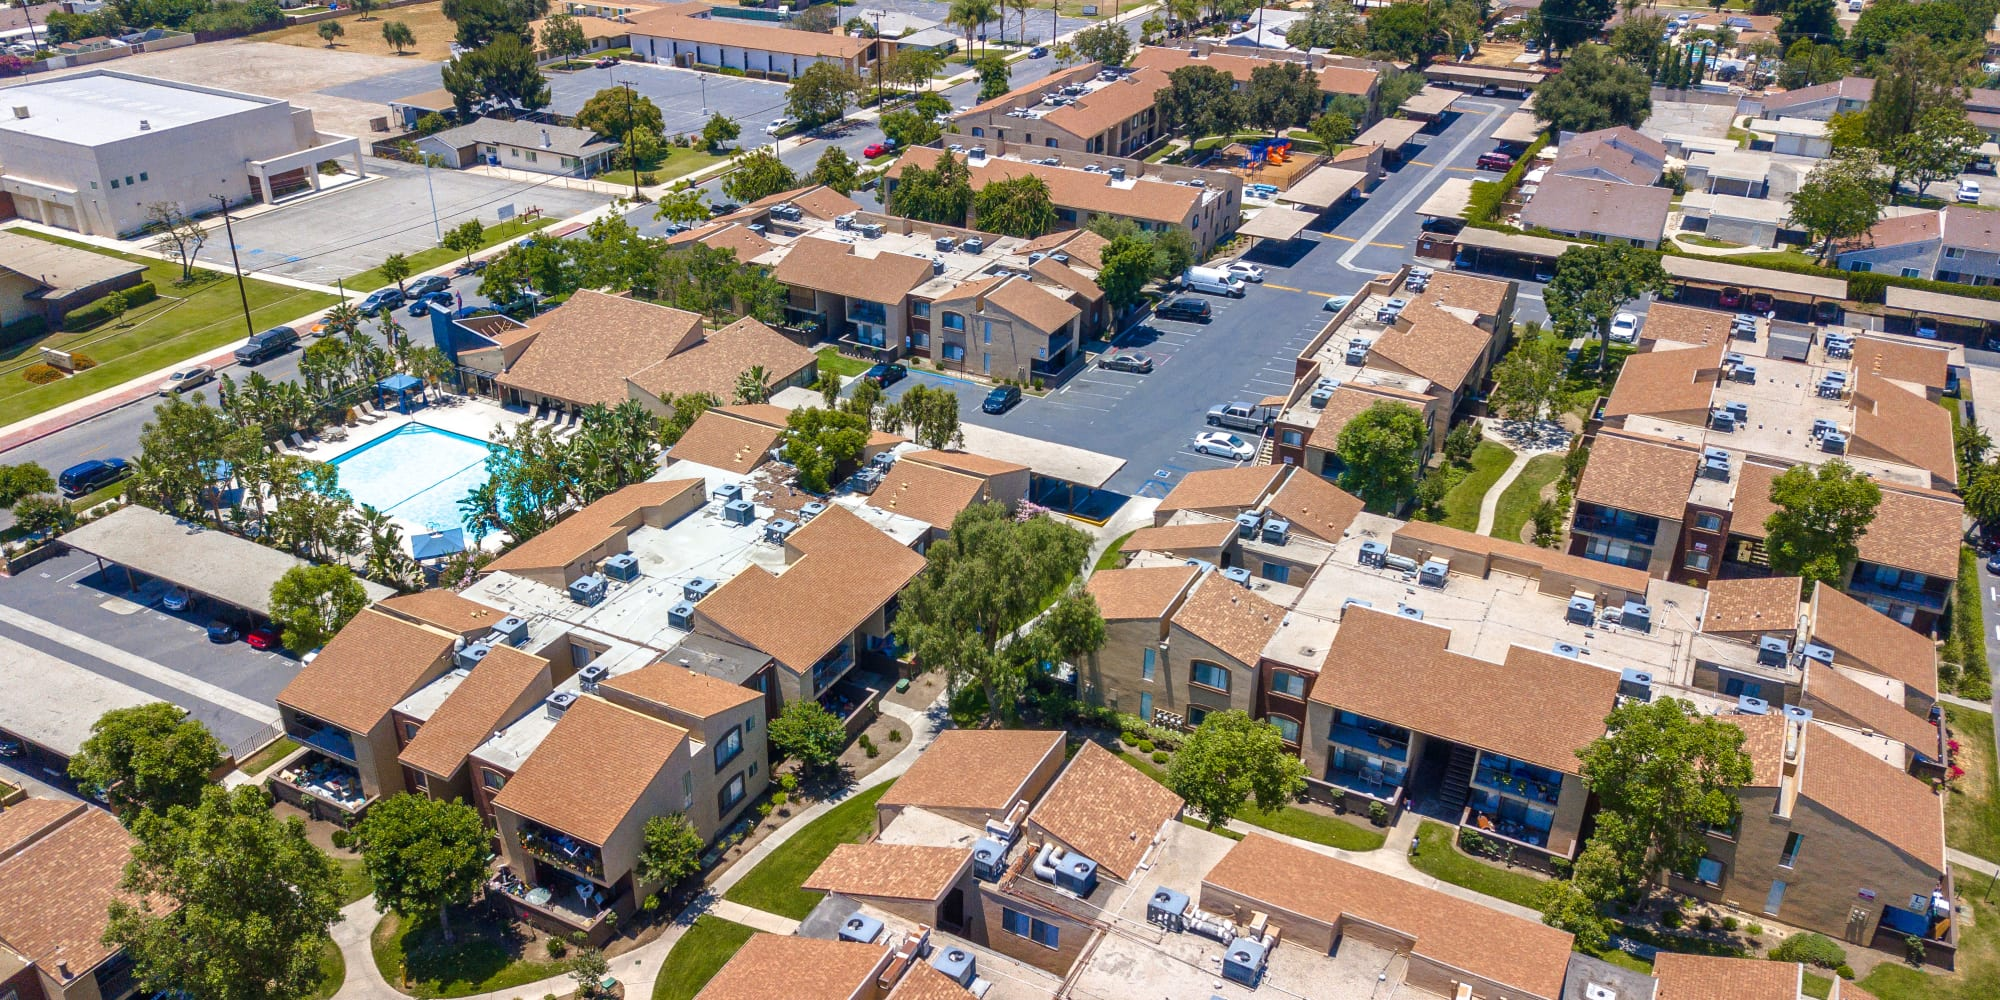 Aerial view of West Fifth Apartments in Ontario, California